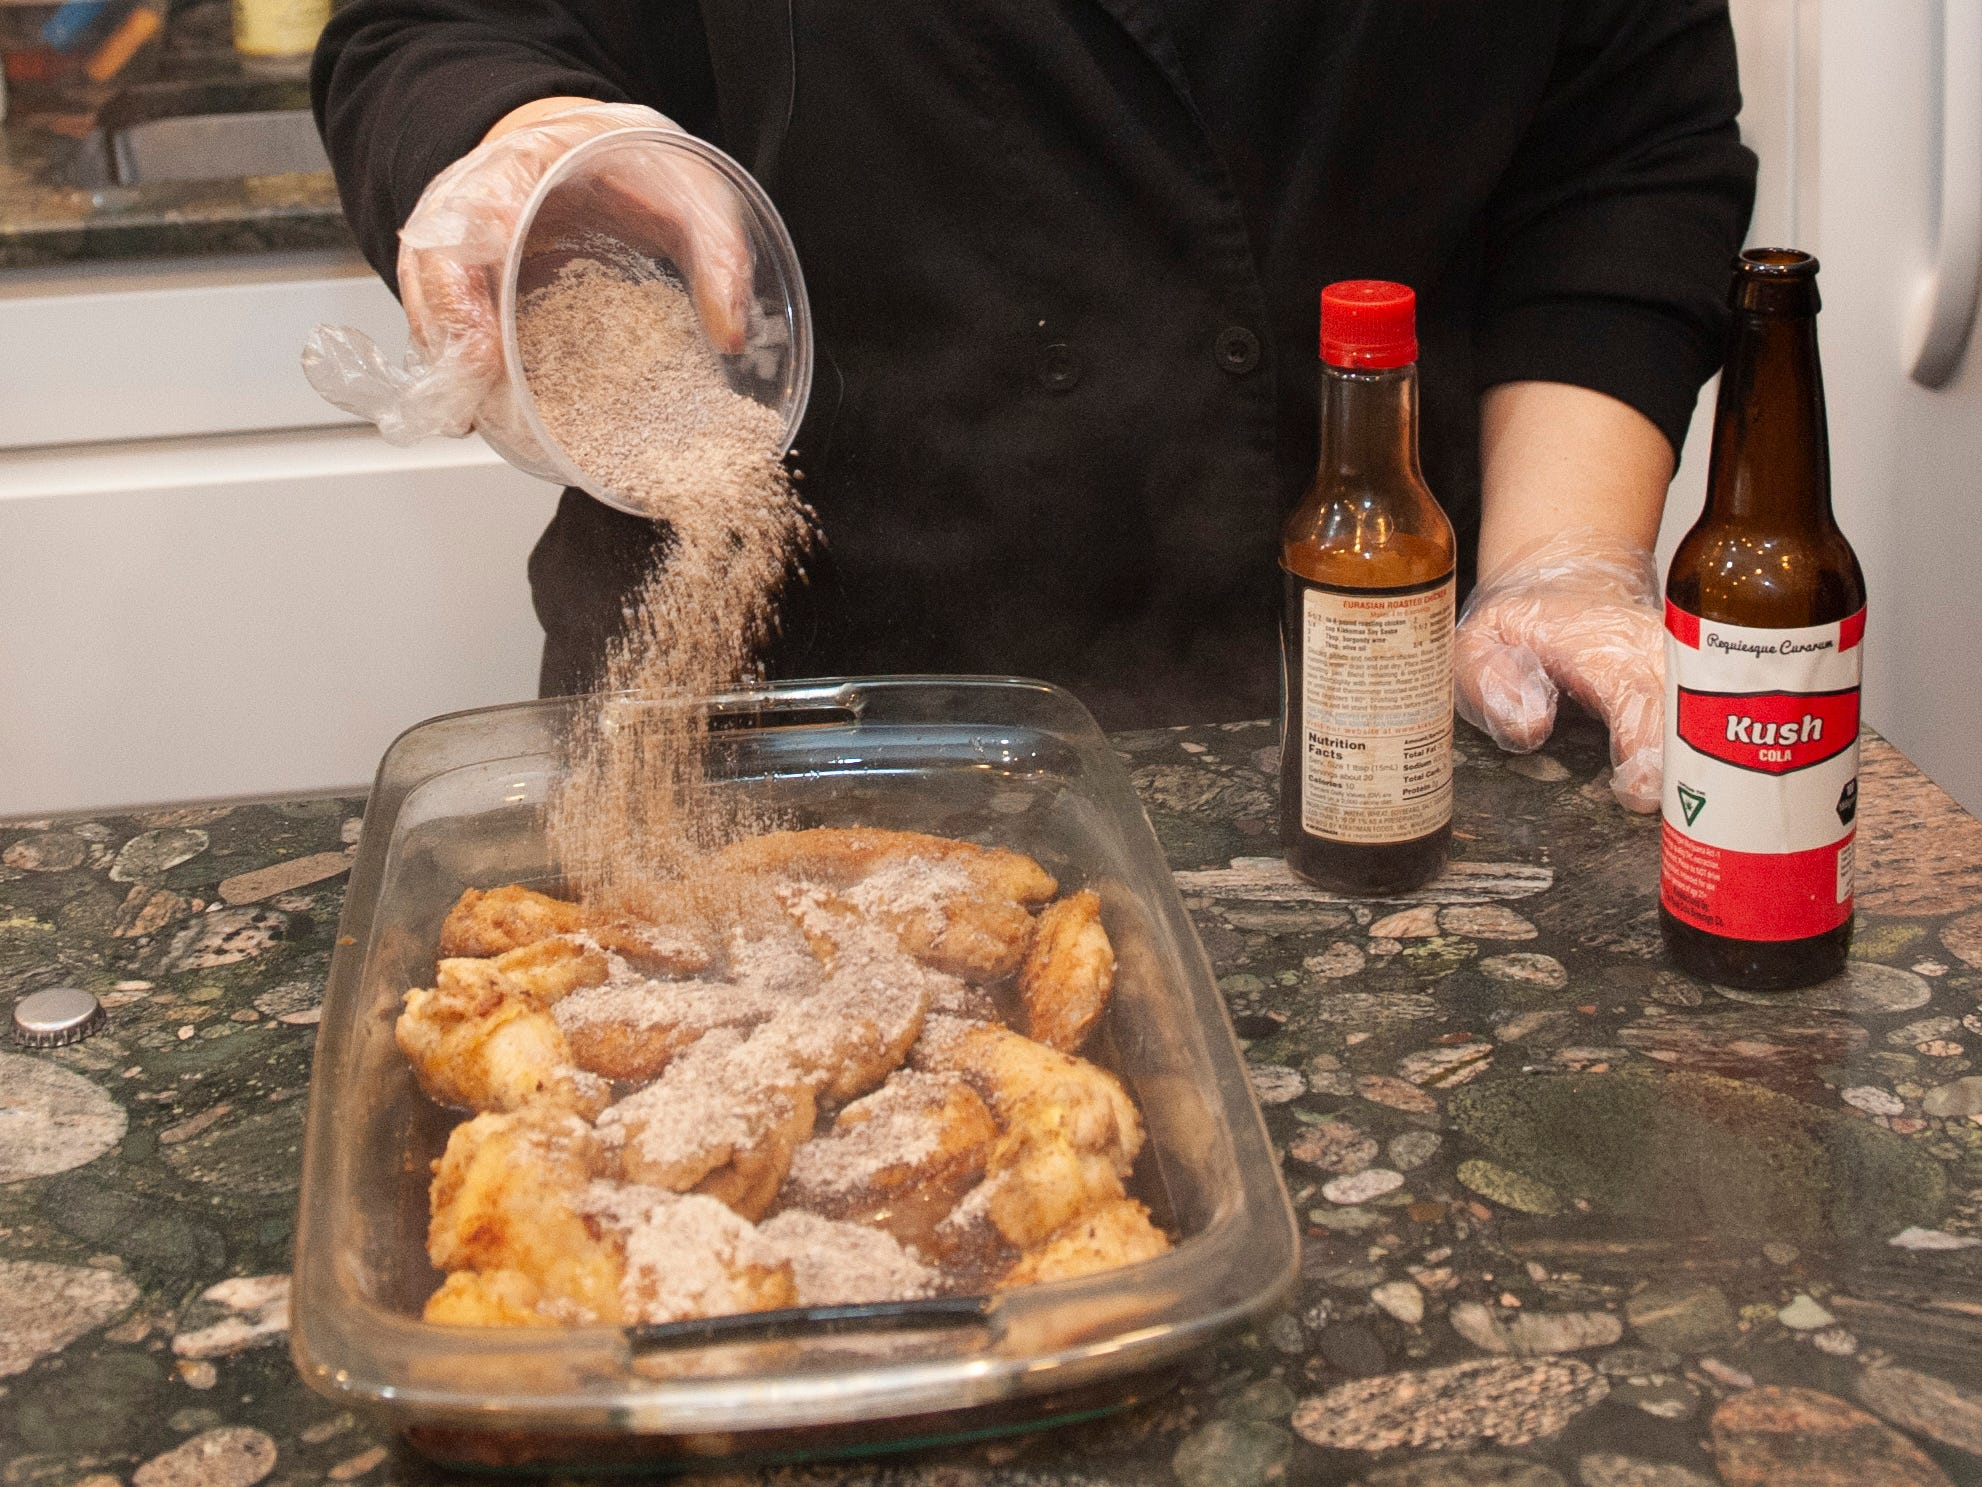 """Cannabis Concepts chef Gigi Diaz, who won High Times magazine's 2017 chef of the year award, pours cannabis-infused brown sugar over her recipe for sweet cola chicken wings during a cooking demonstration at """"The Art of Cannabis"""" tasting and art exhibition at the Cannabis Counsel in Detroit on Dec. 22, 2018."""